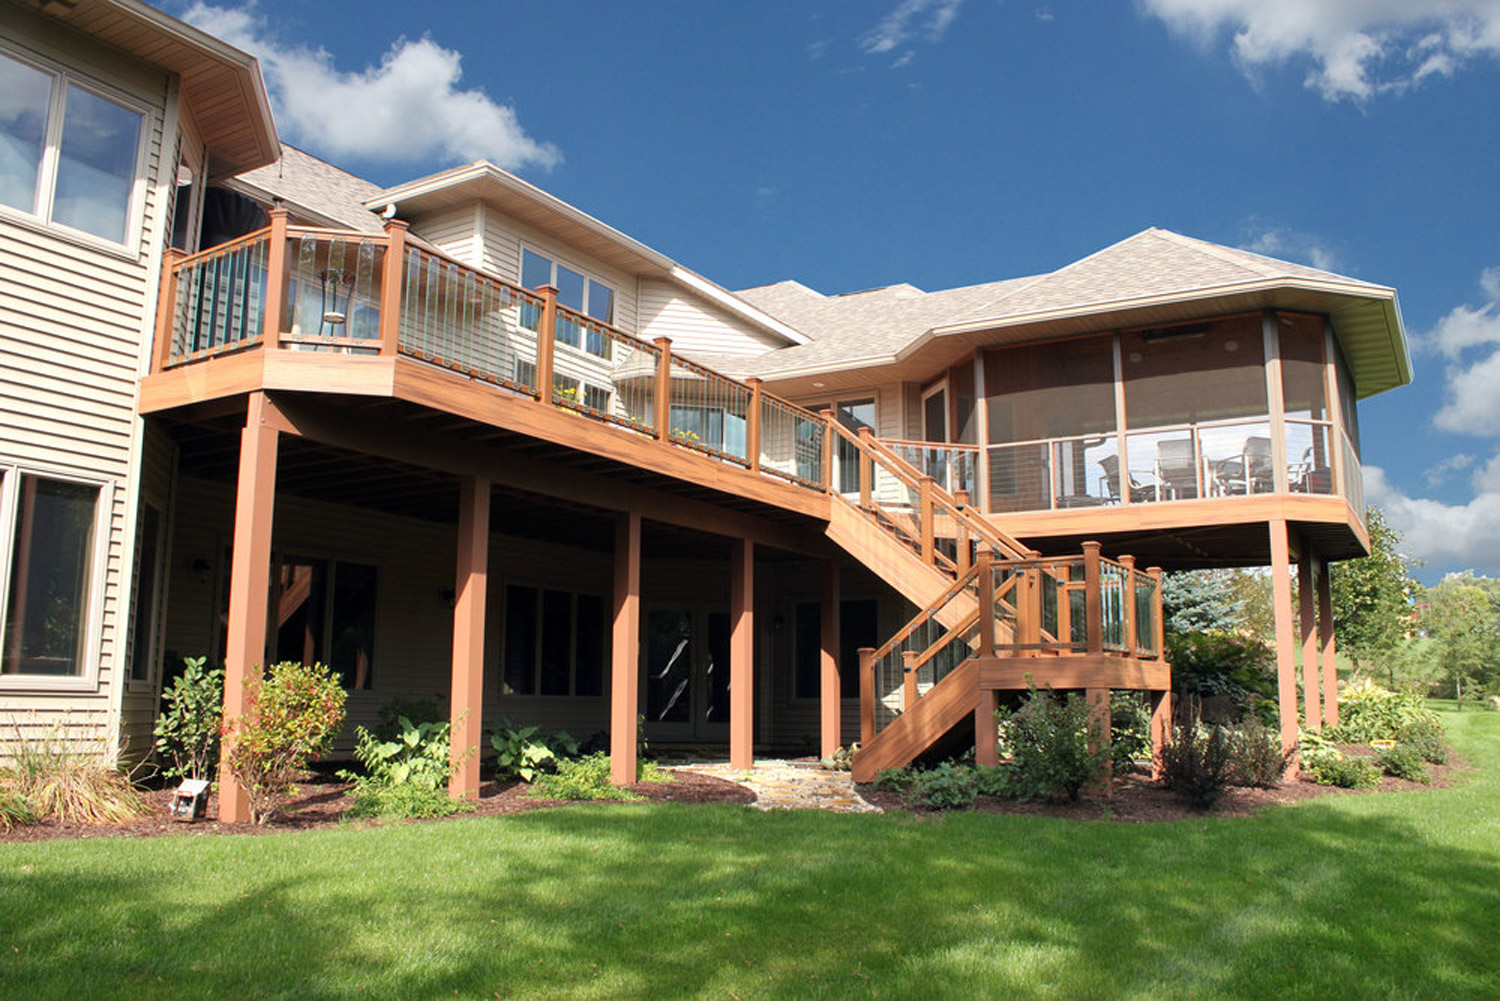 Two Story Deck Design and Home Renovation, Madison, WI